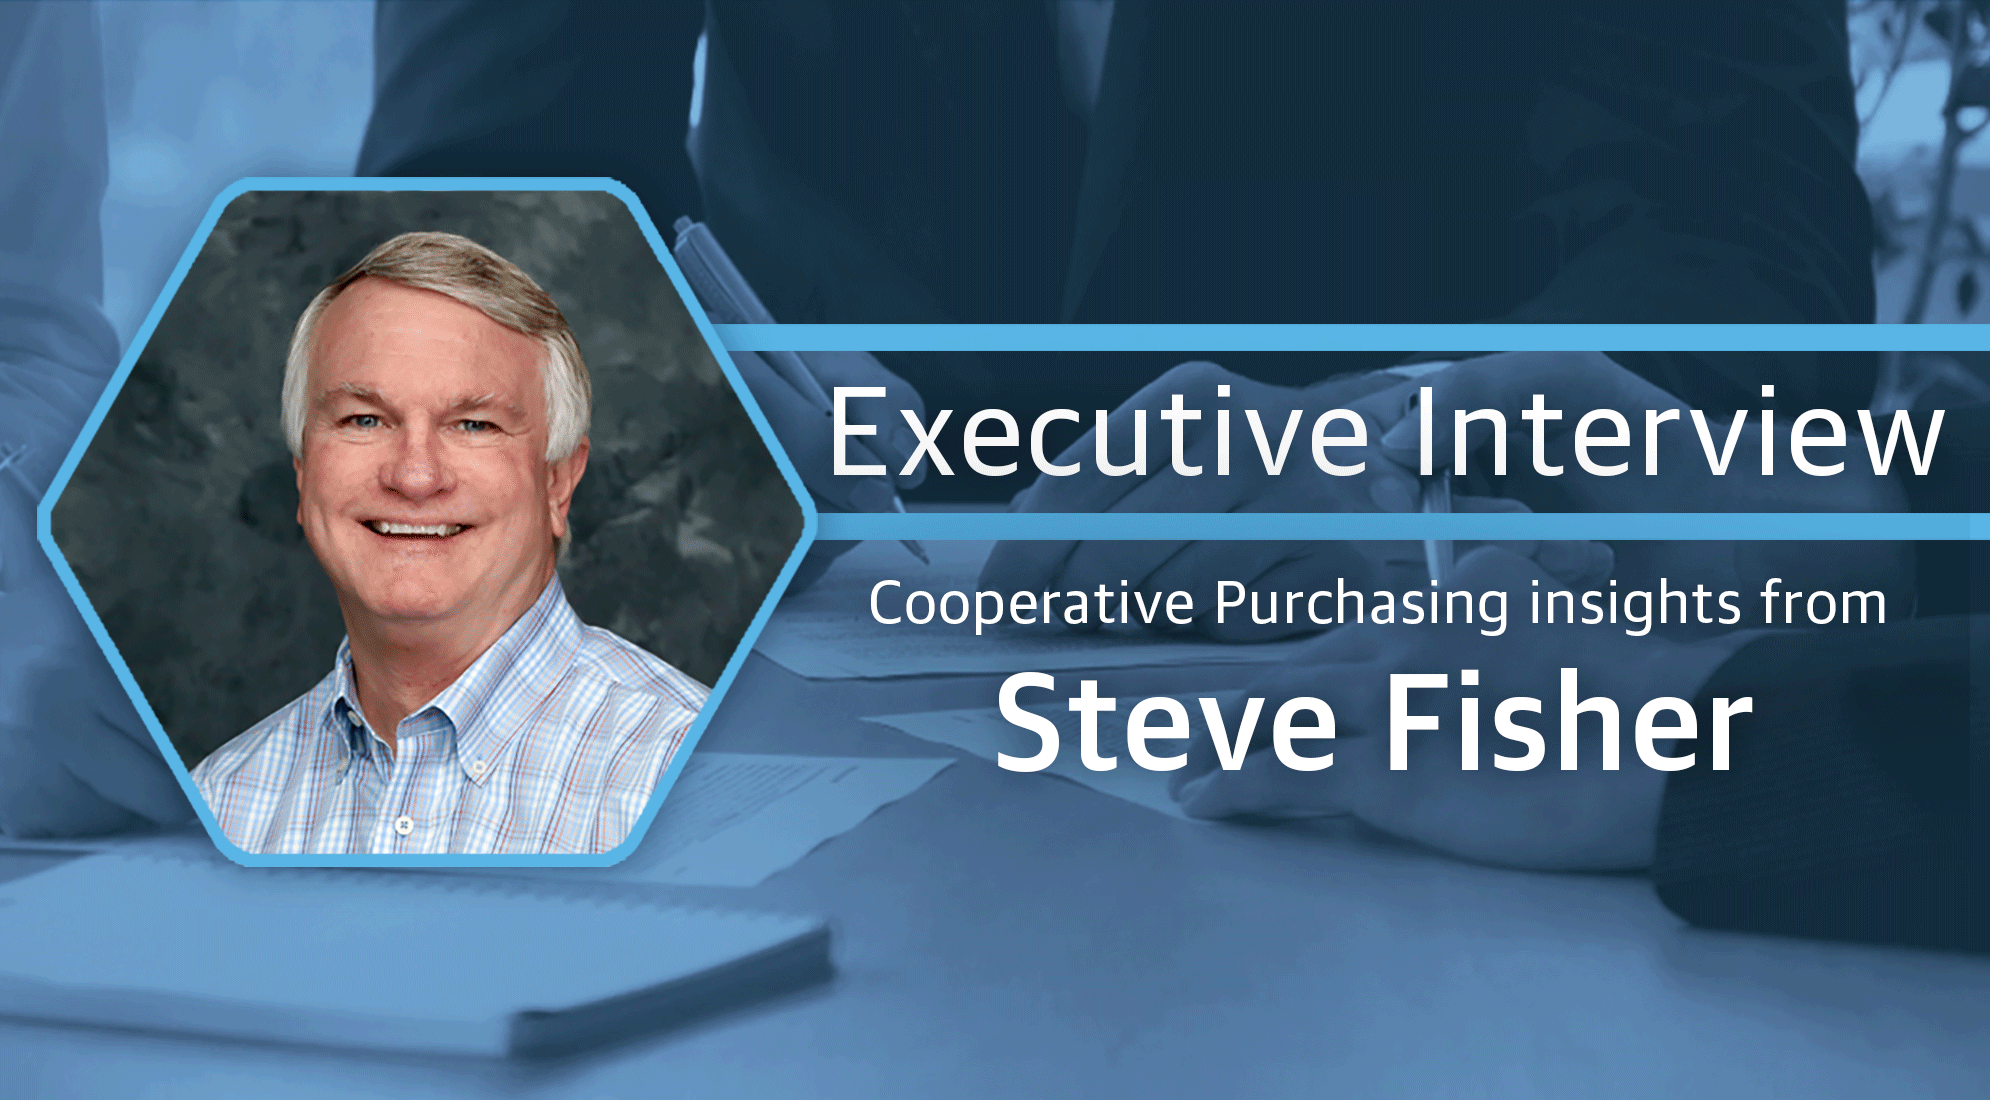 Executive Interview Series: February Edition